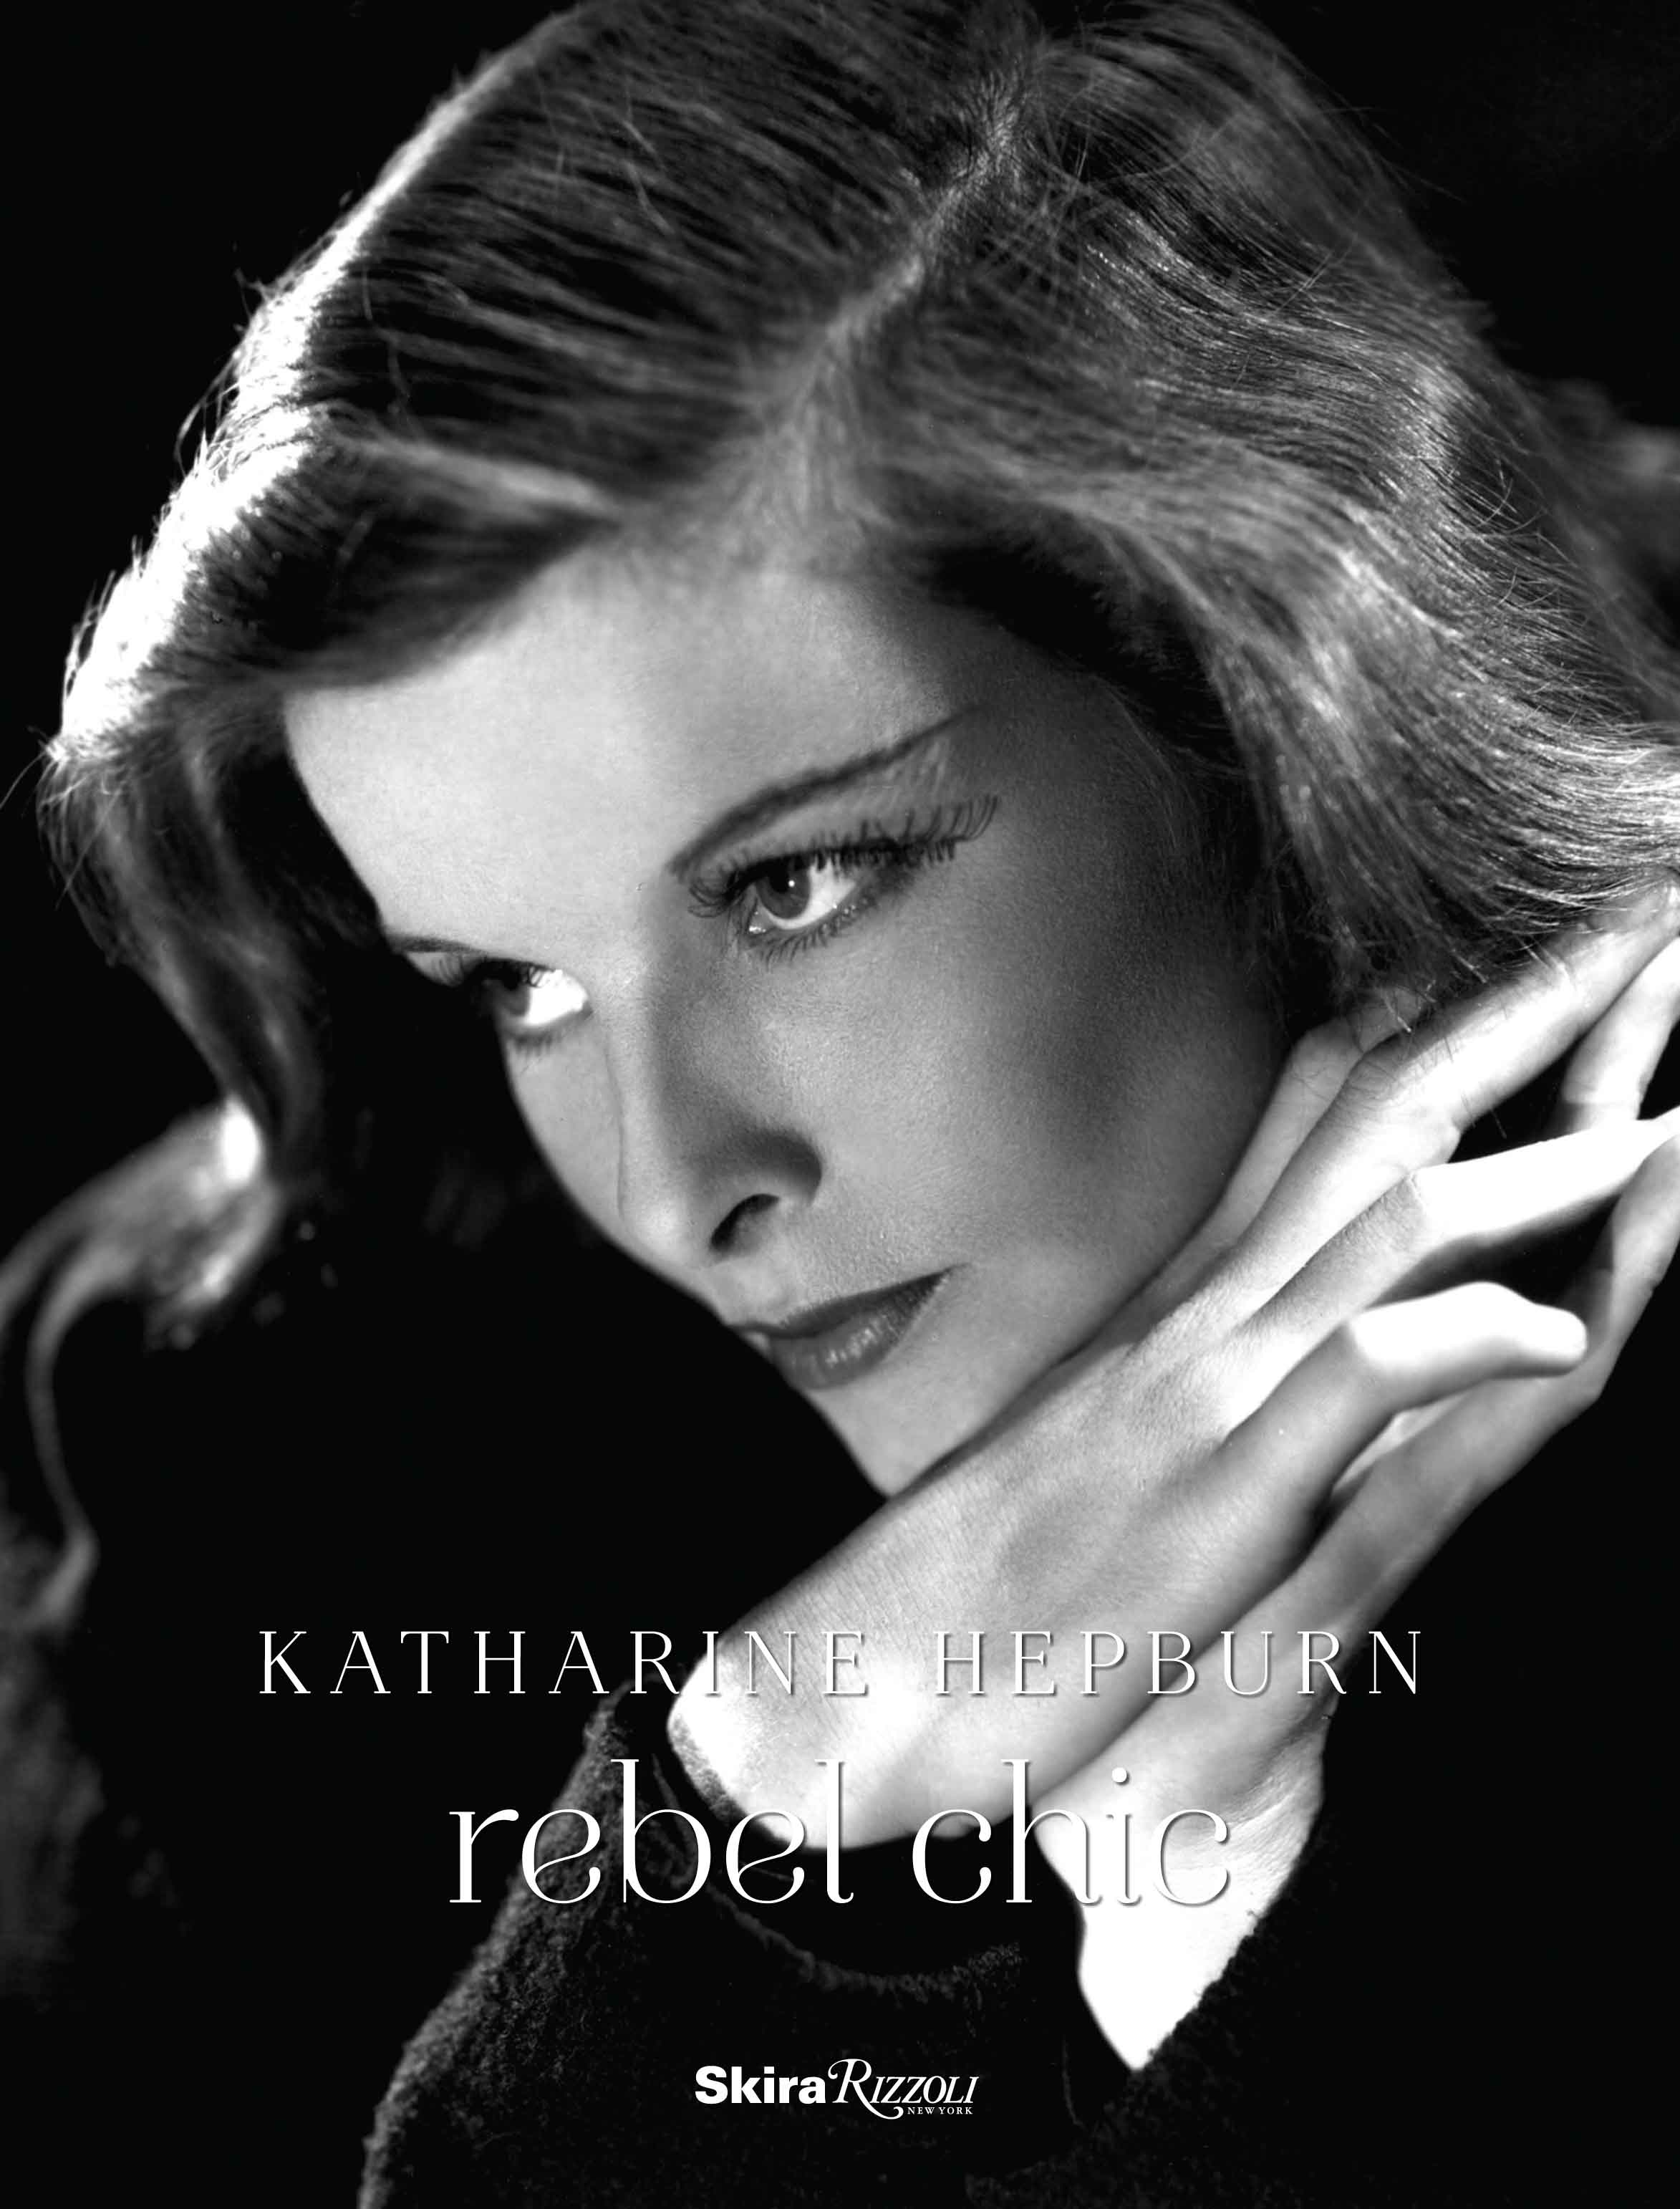 RebelChic_KatharineHepburn_cover-1